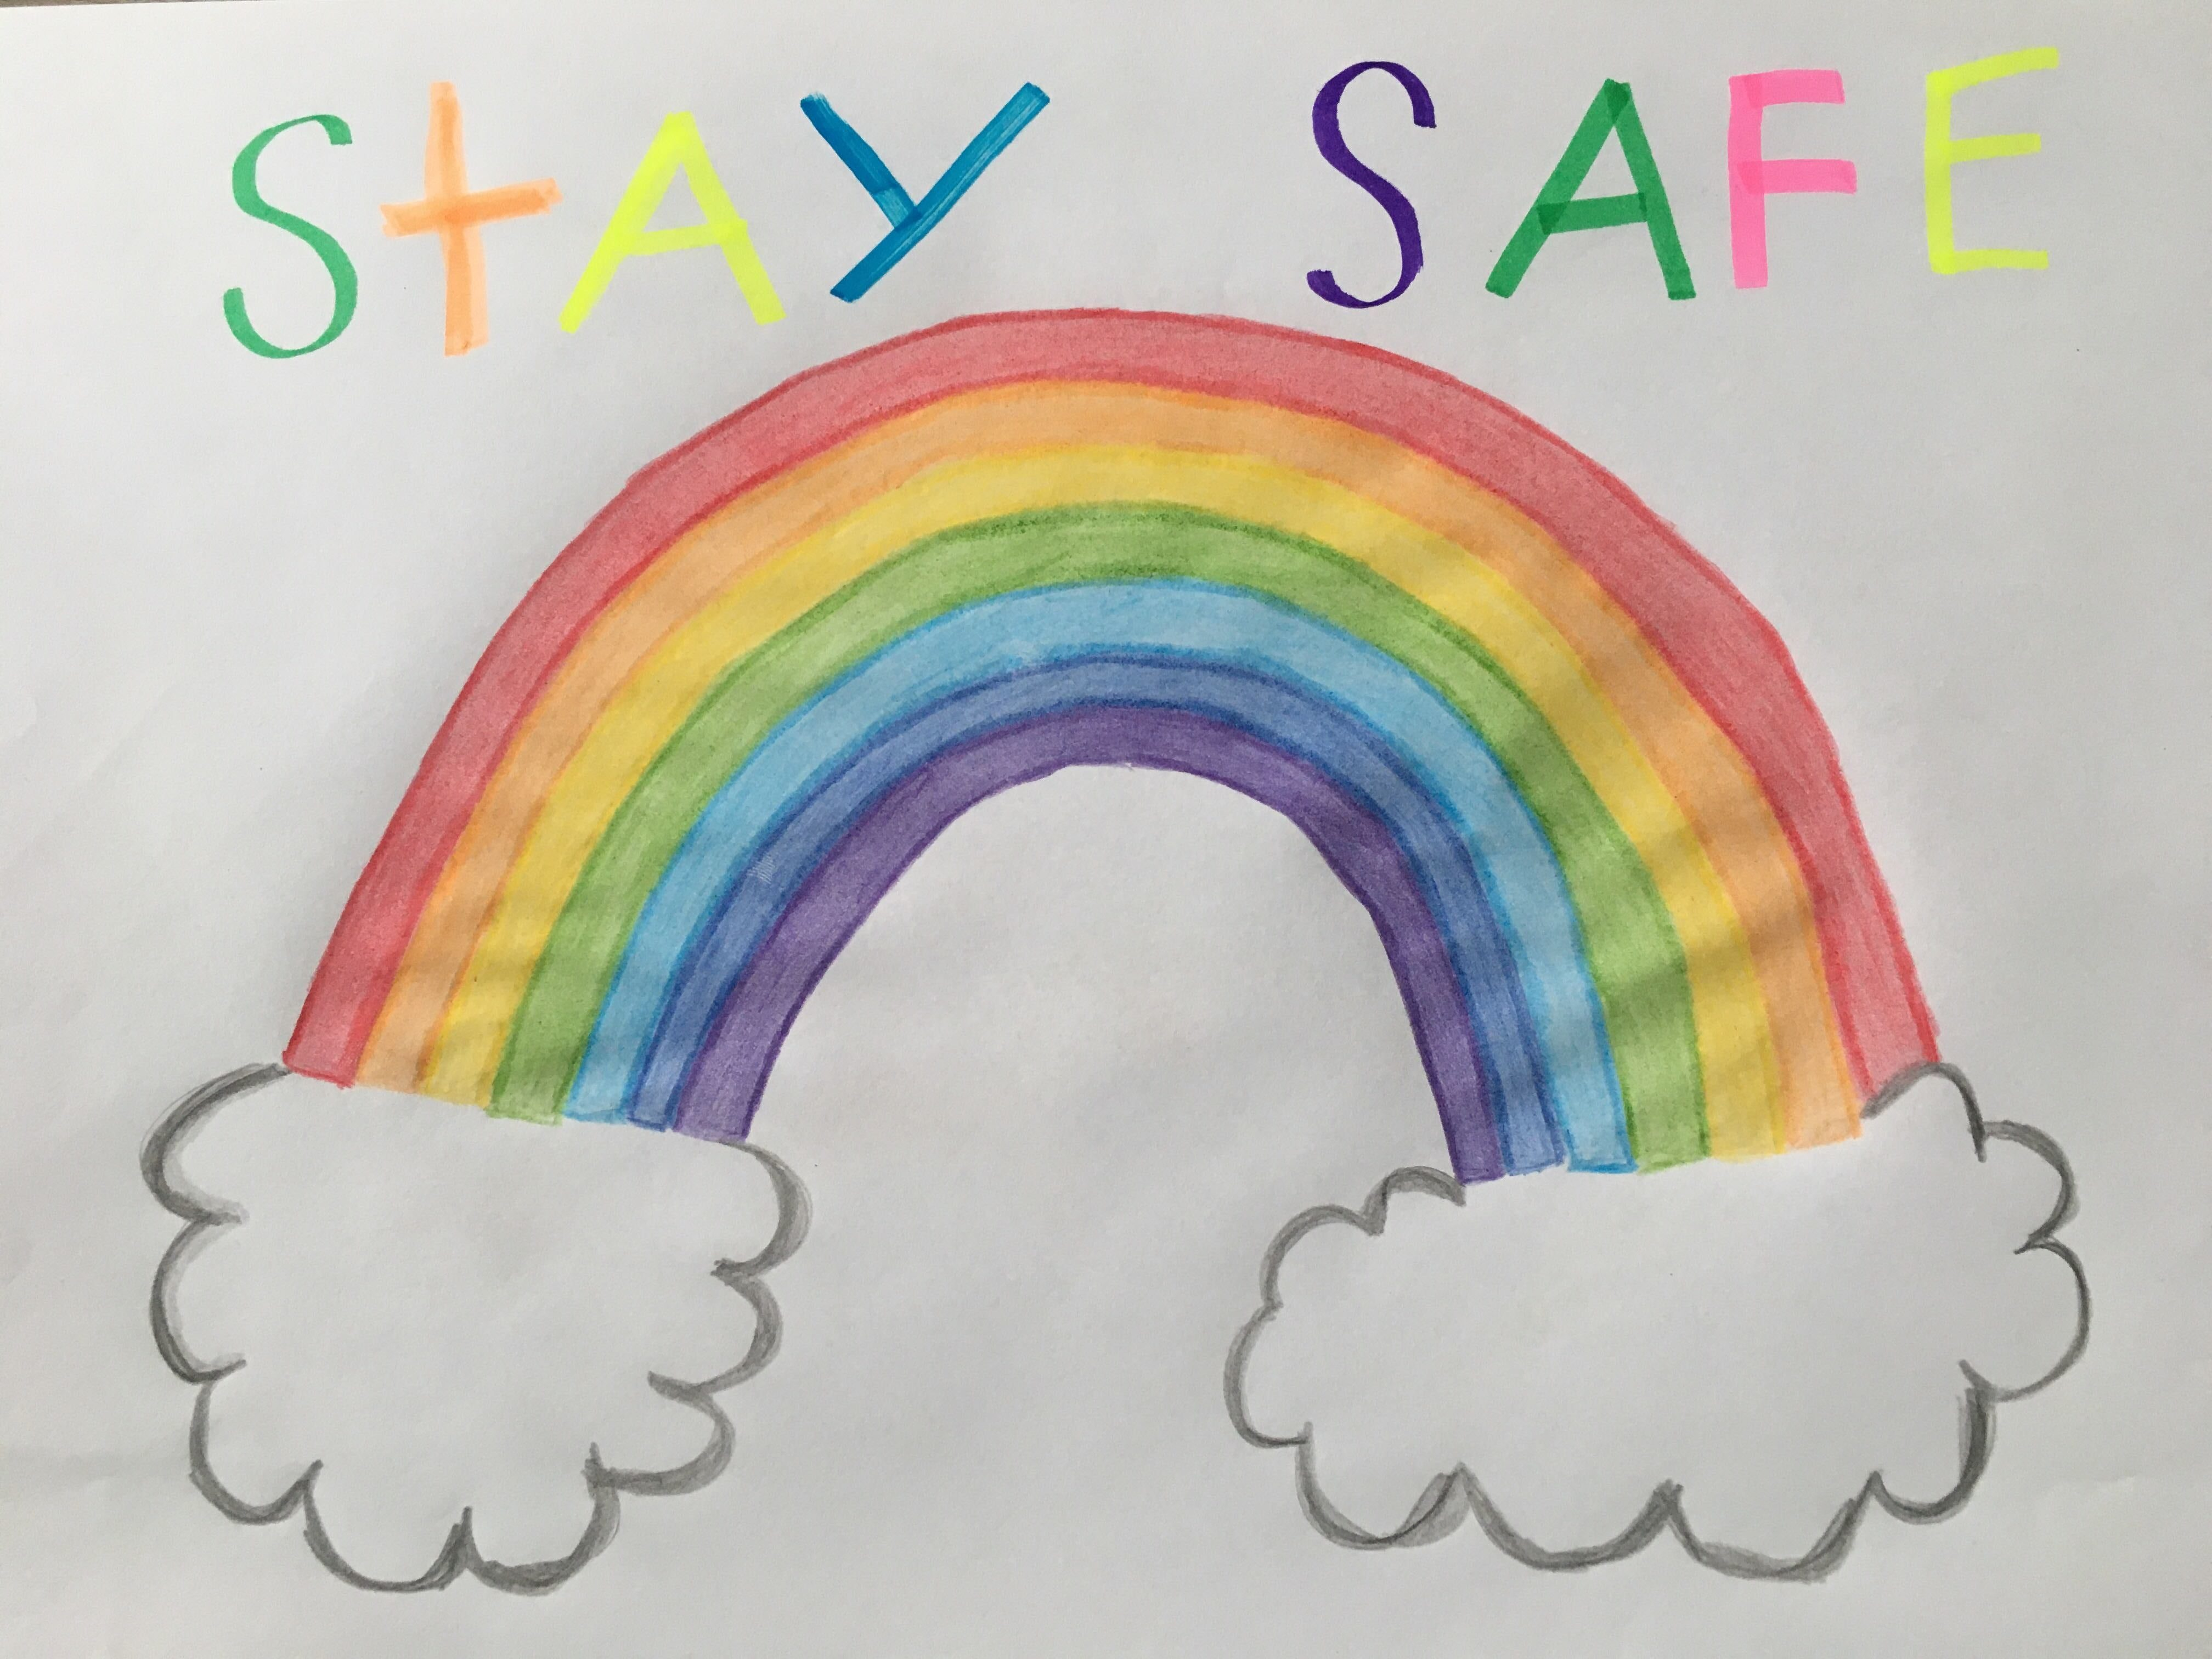 Children's drawing of a rainbow with the words 'stay safe' written above it